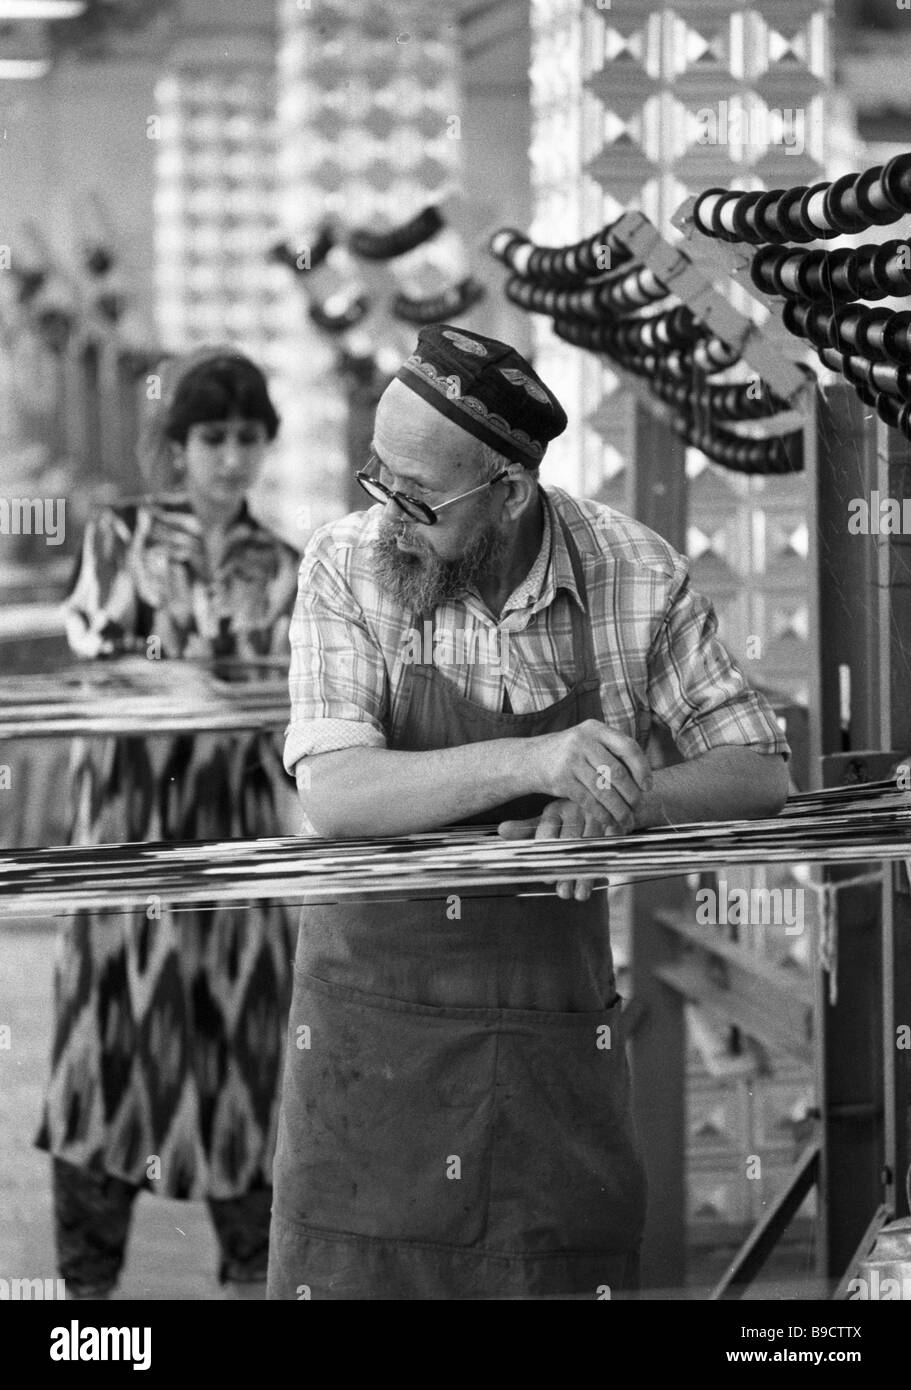 One of the oldest workers of Tajikatlas weaving production enterprise at the loom - Stock Image